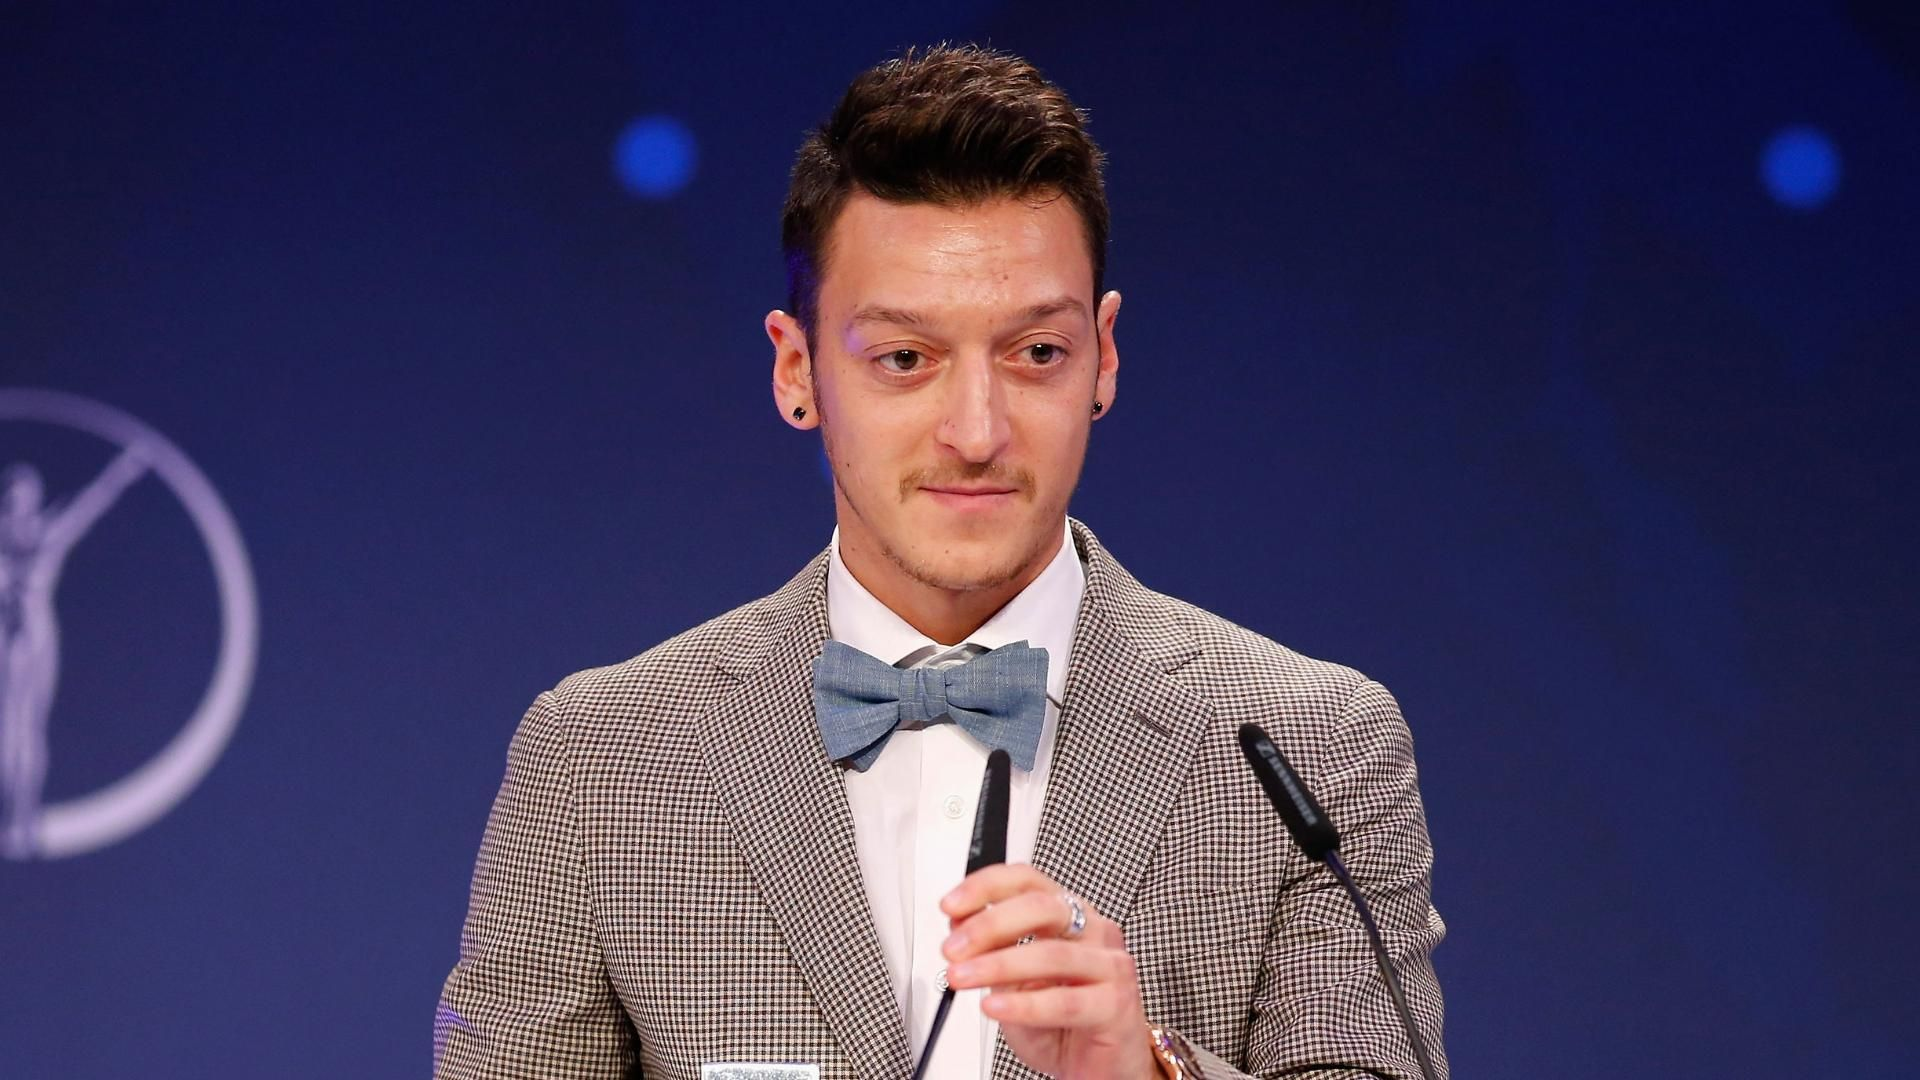 Mesut ozil received a prize for charity at the laureus media awards on